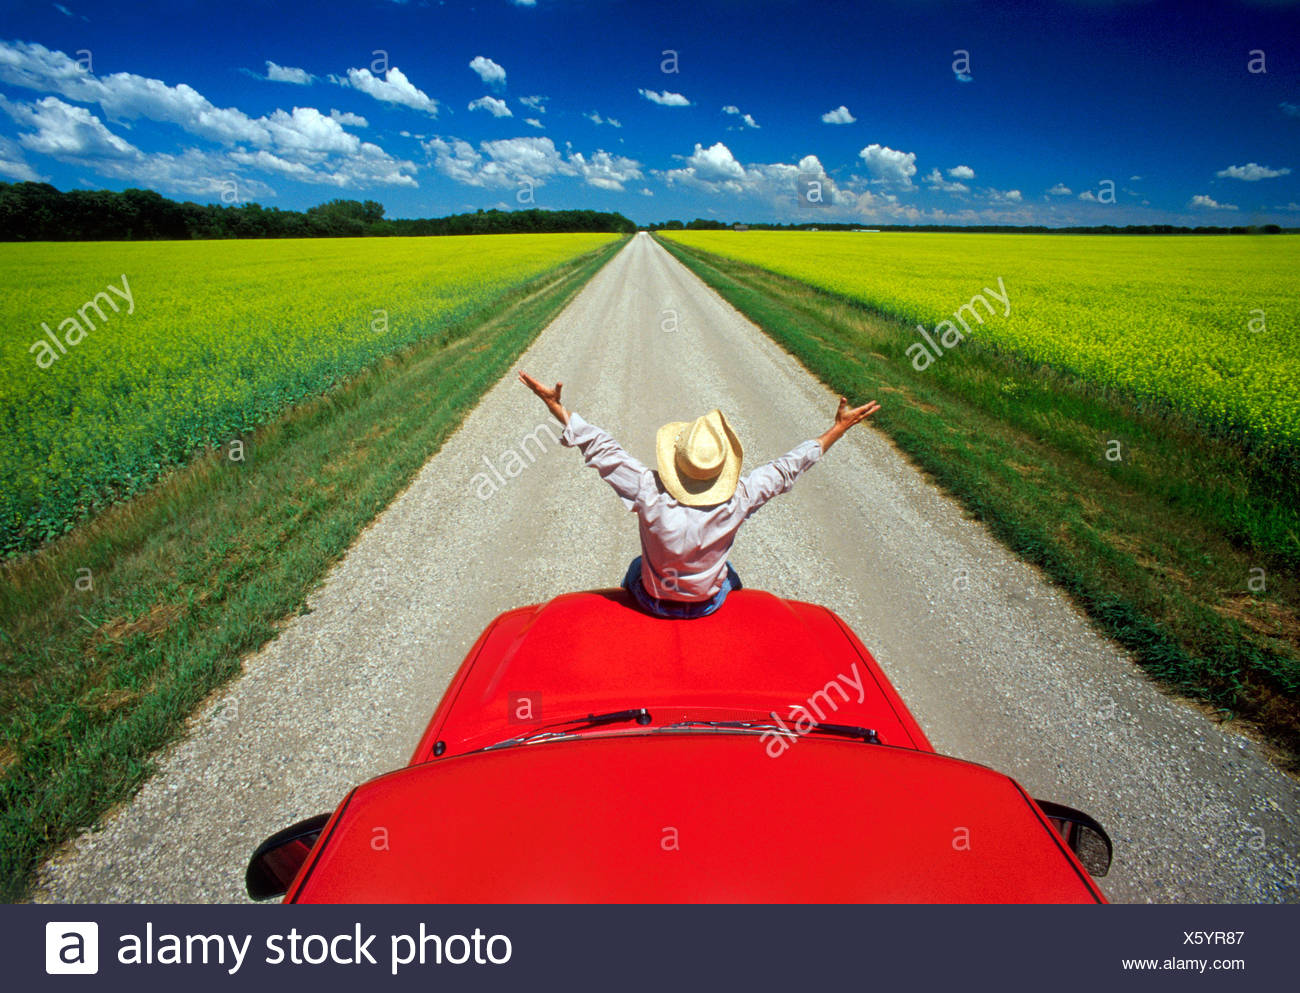 A man sits on the front of his truck overlooking a country road with blooming canola fields near Roland, Manitoba, Canada - Stock Image